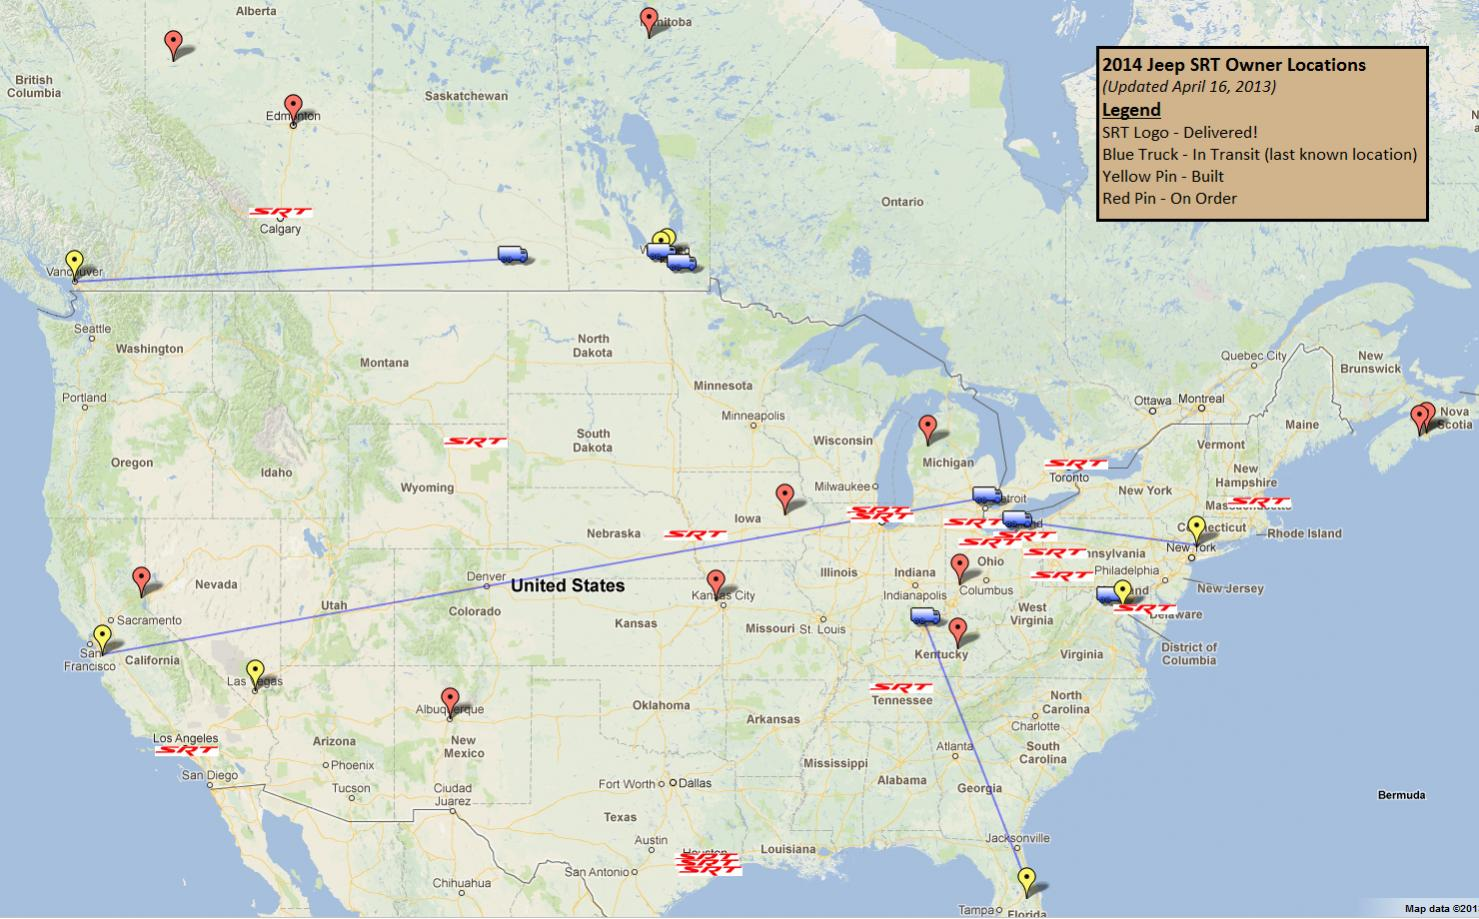 2014 SRT Owners Map 2013 04 16